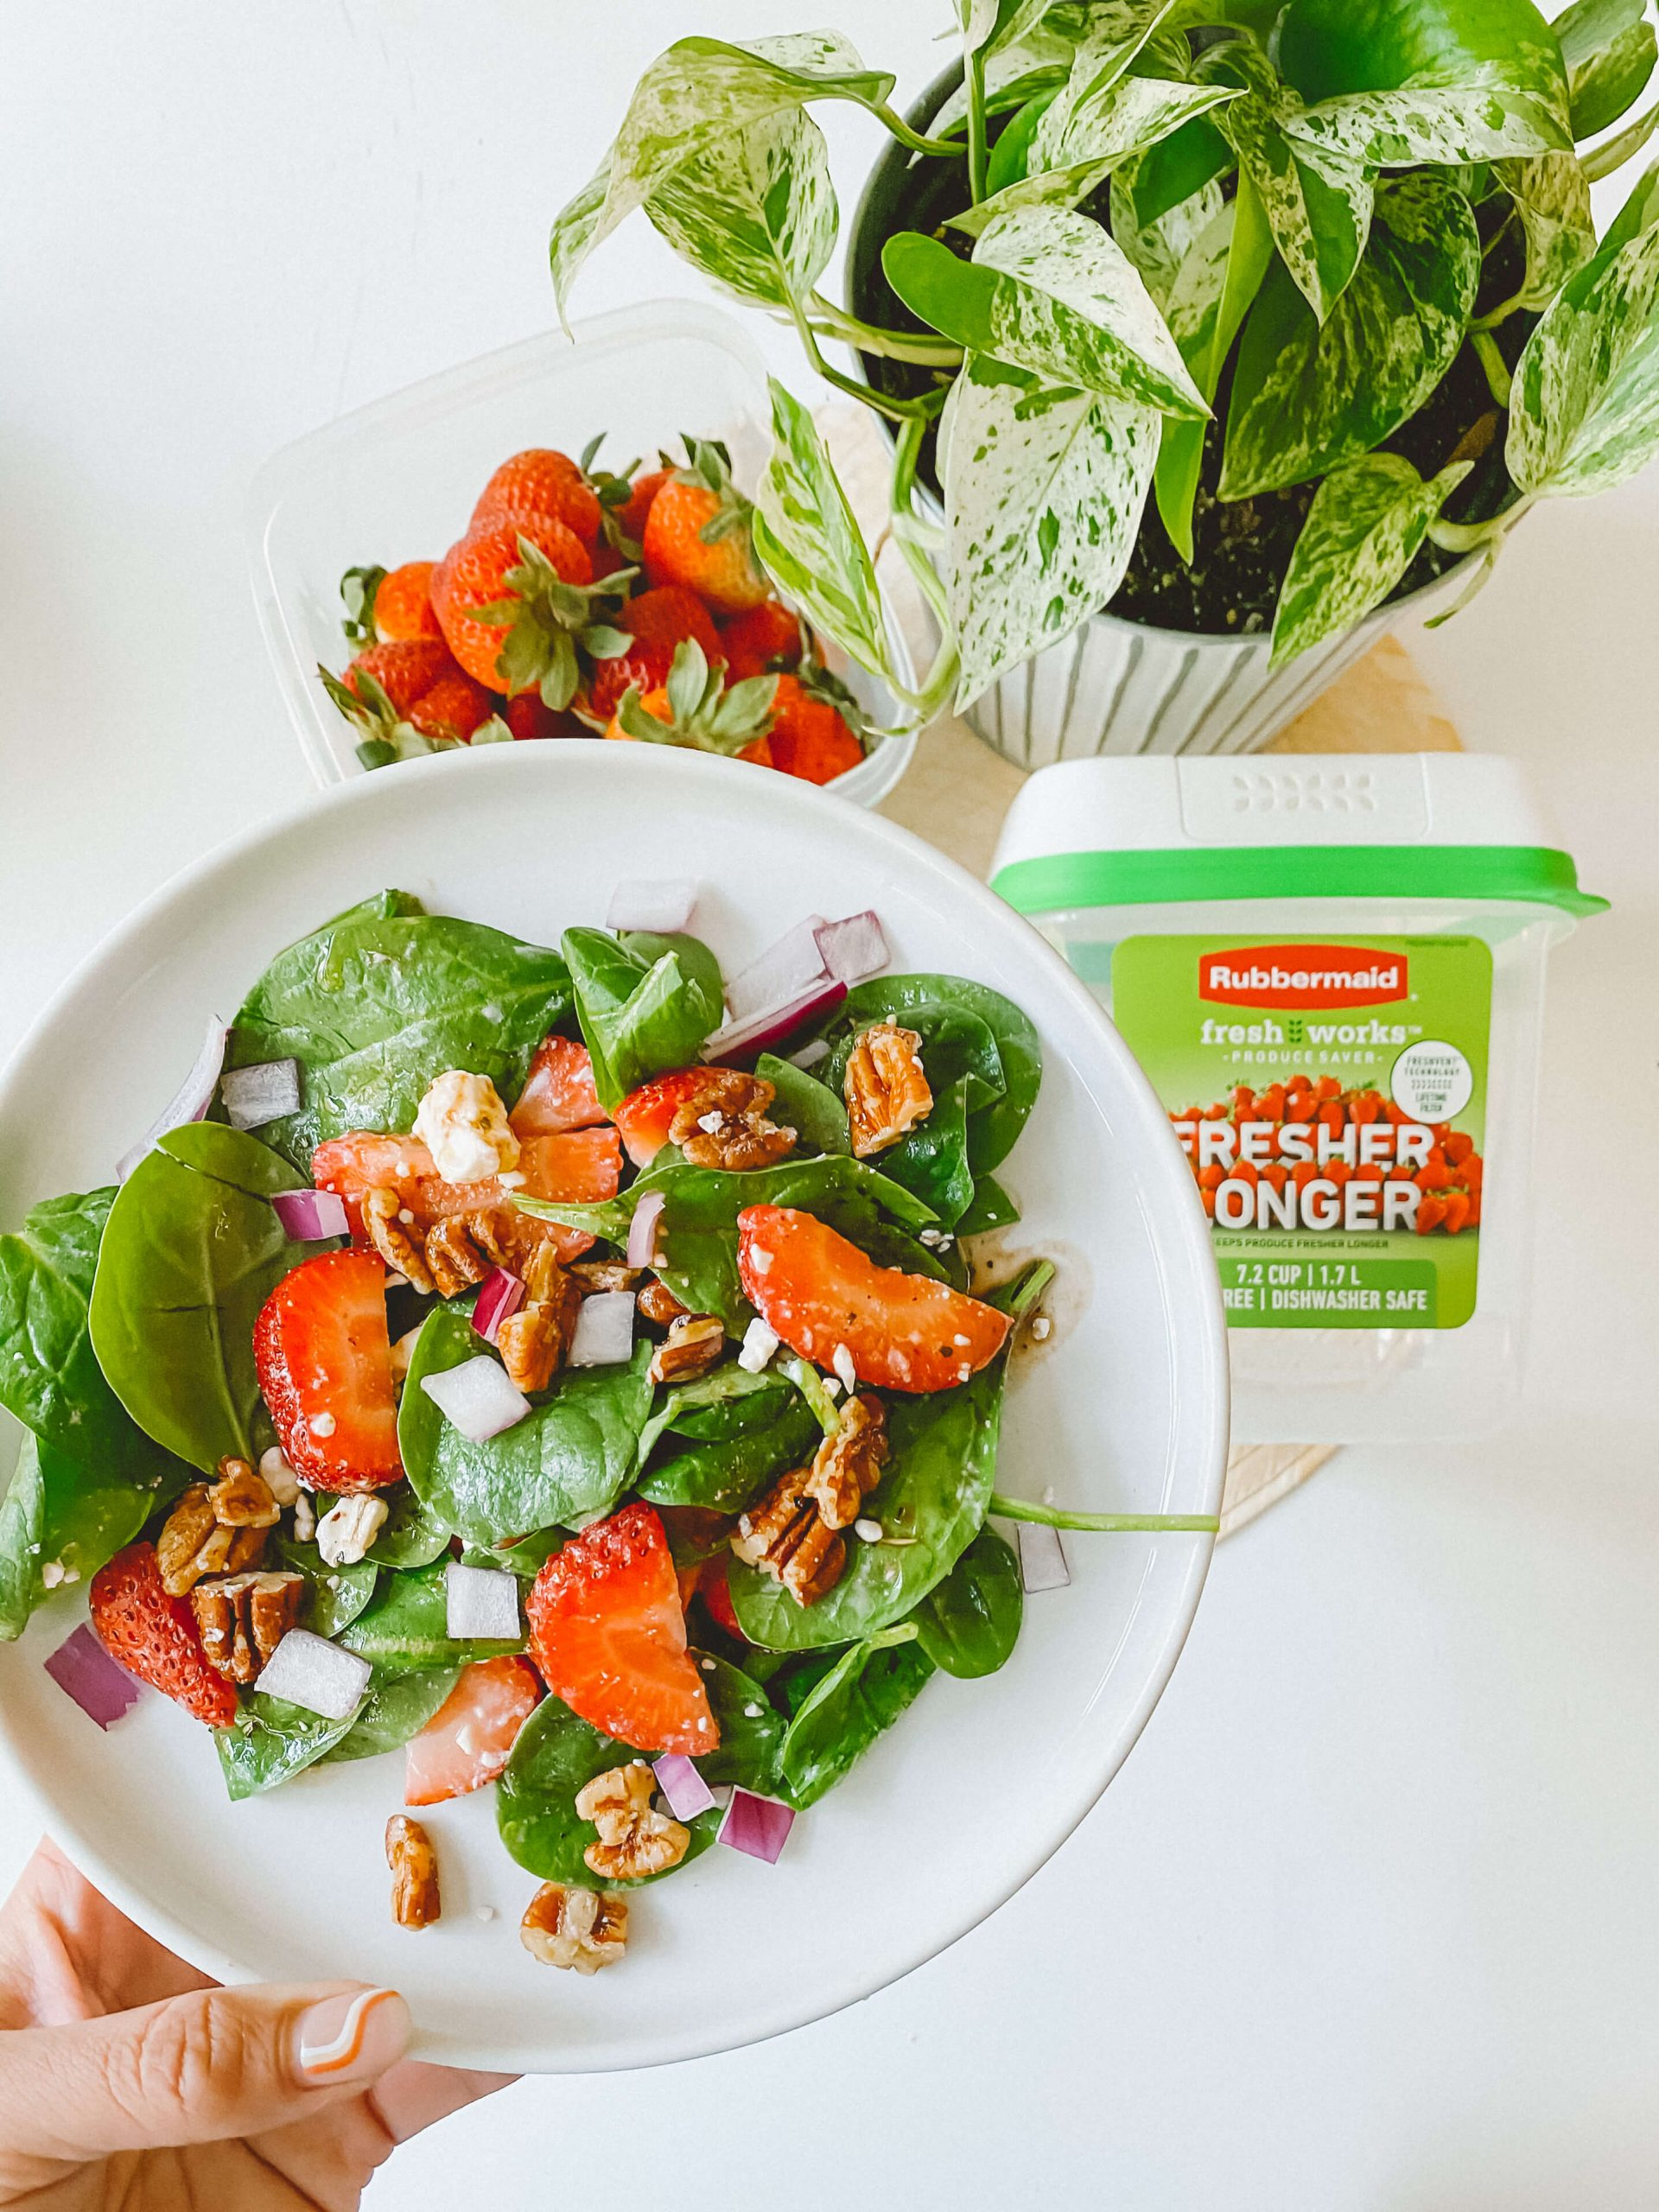 Strawberry-Spinach-Summer-Salad-FreshWorks-Produce-Saver-Rubbermaid-Green-Sustainable-Products